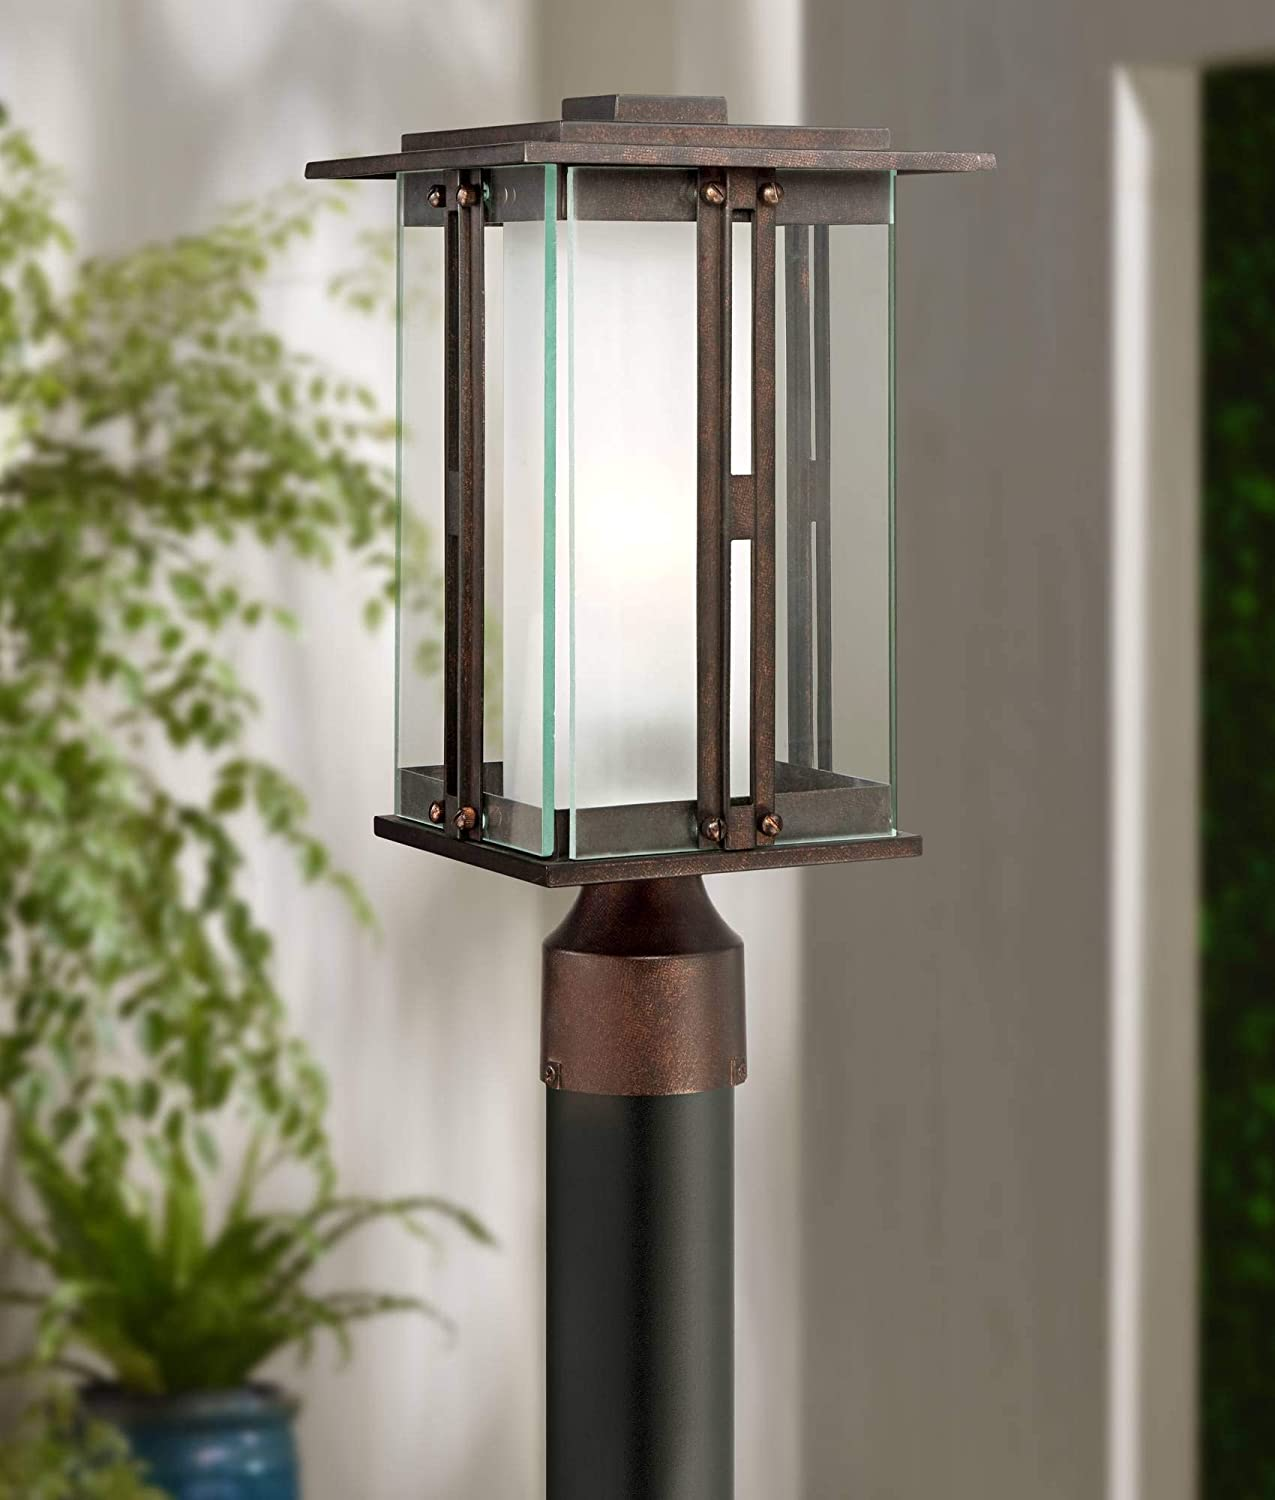 Fallbrook Collection Modern Outdoor Post Light Fixture Bronze 15 3/4 Clear and Frosted Double Glass Lantern for Exterior House Garden Yard Driveway Deck - Franklin Iron Works